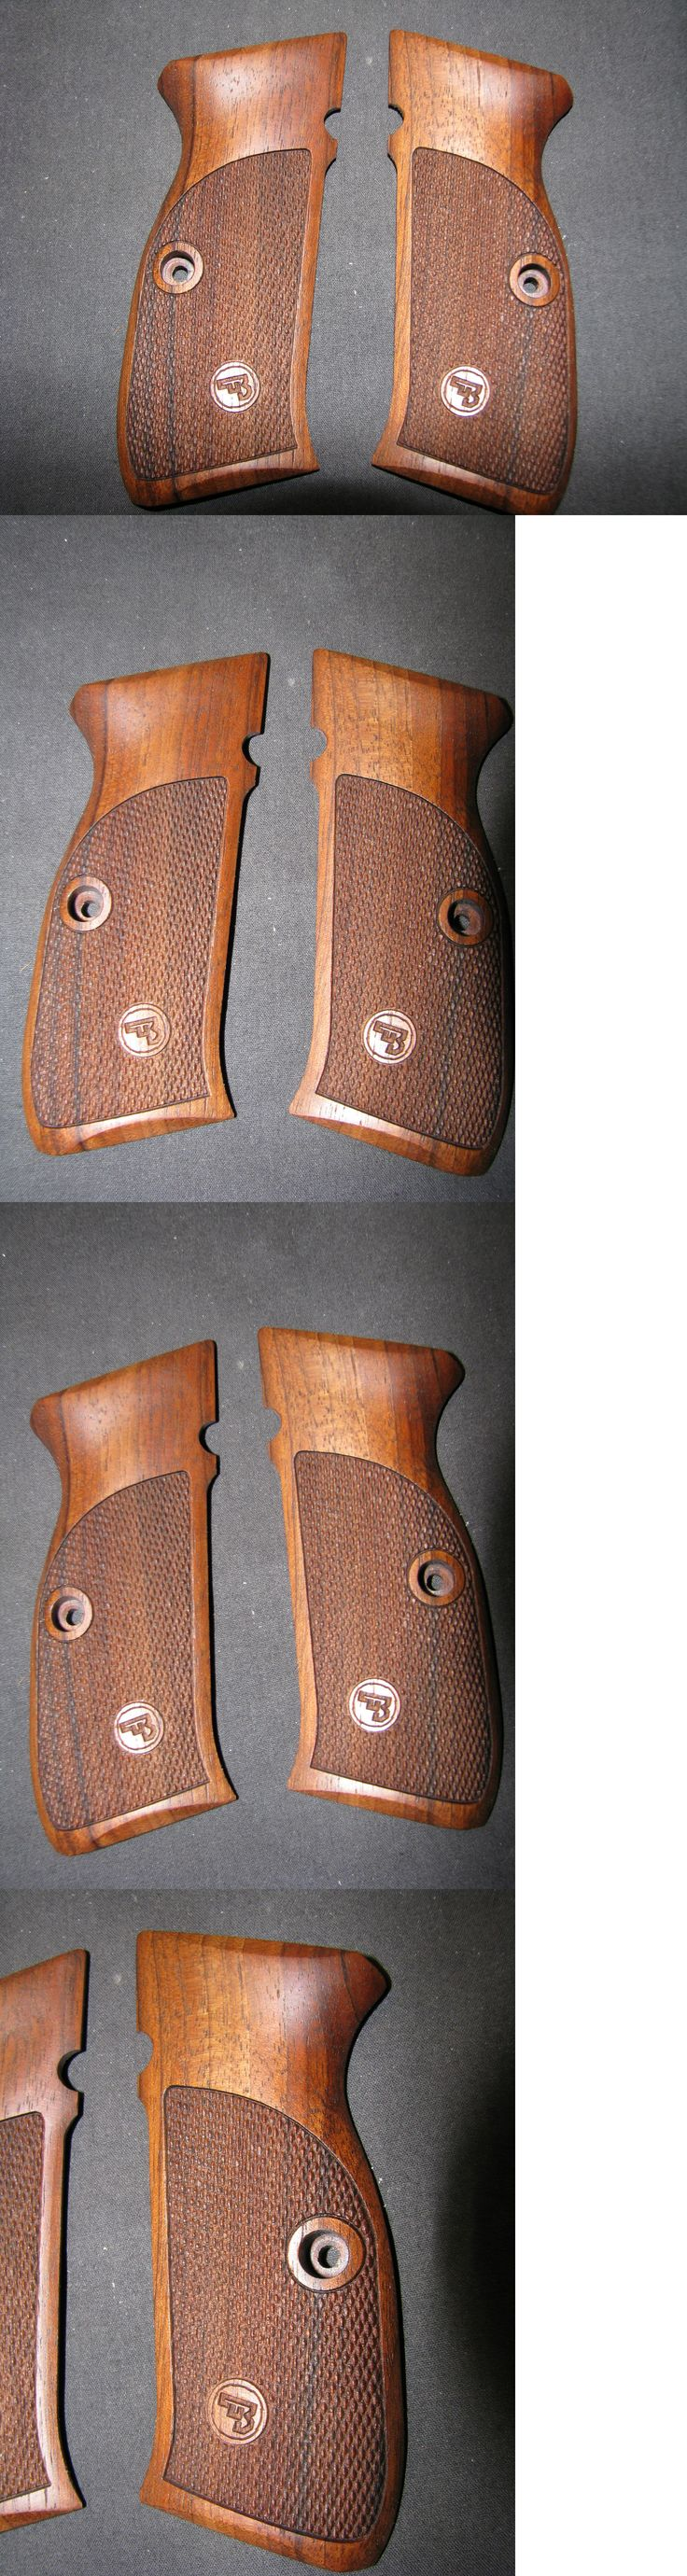 Other Hunting Accessories 52509: Cz 75 Sp-01 Shadow Only Fine English Walnut Checkered Pistol Grips W Logo Sweet! -> BUY IT NOW ONLY: $89.95 on eBay!